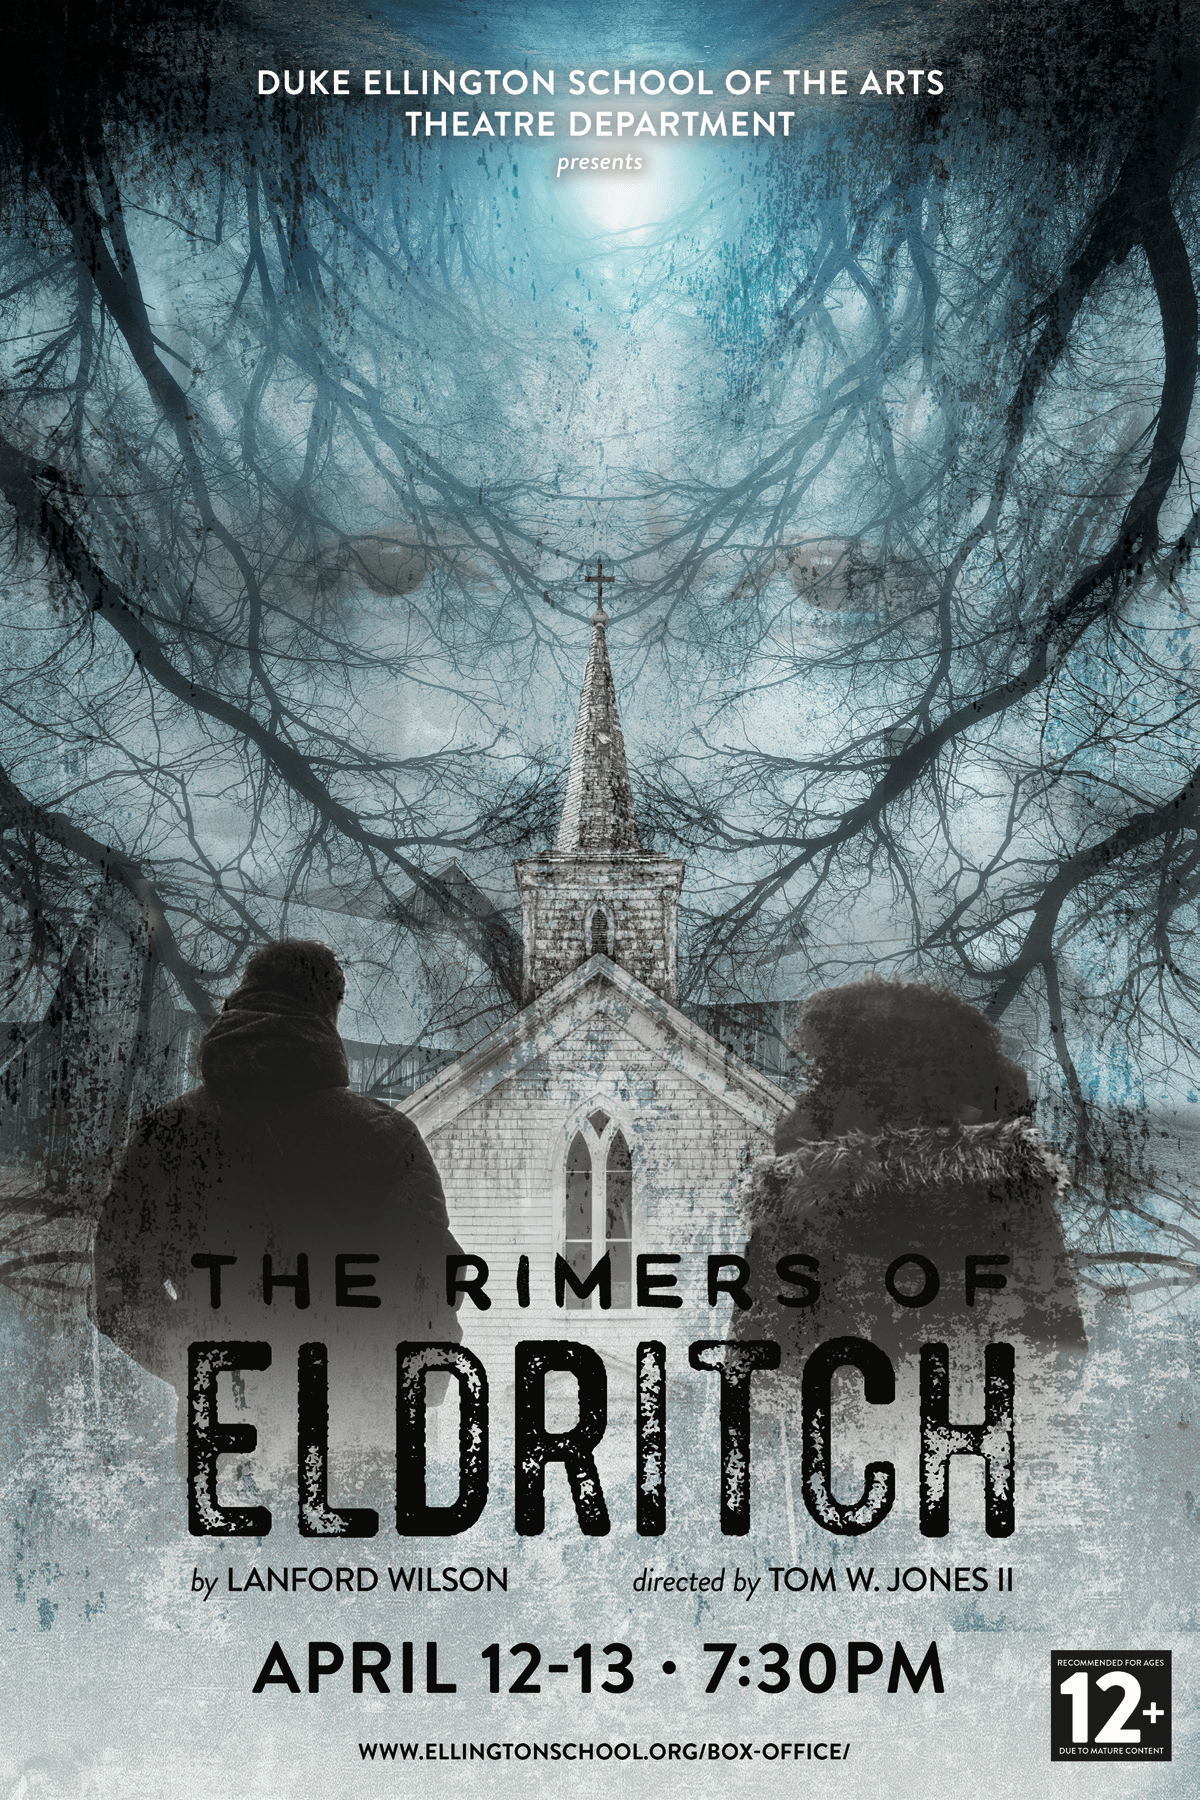 The Rimers of Eldritch Postcard